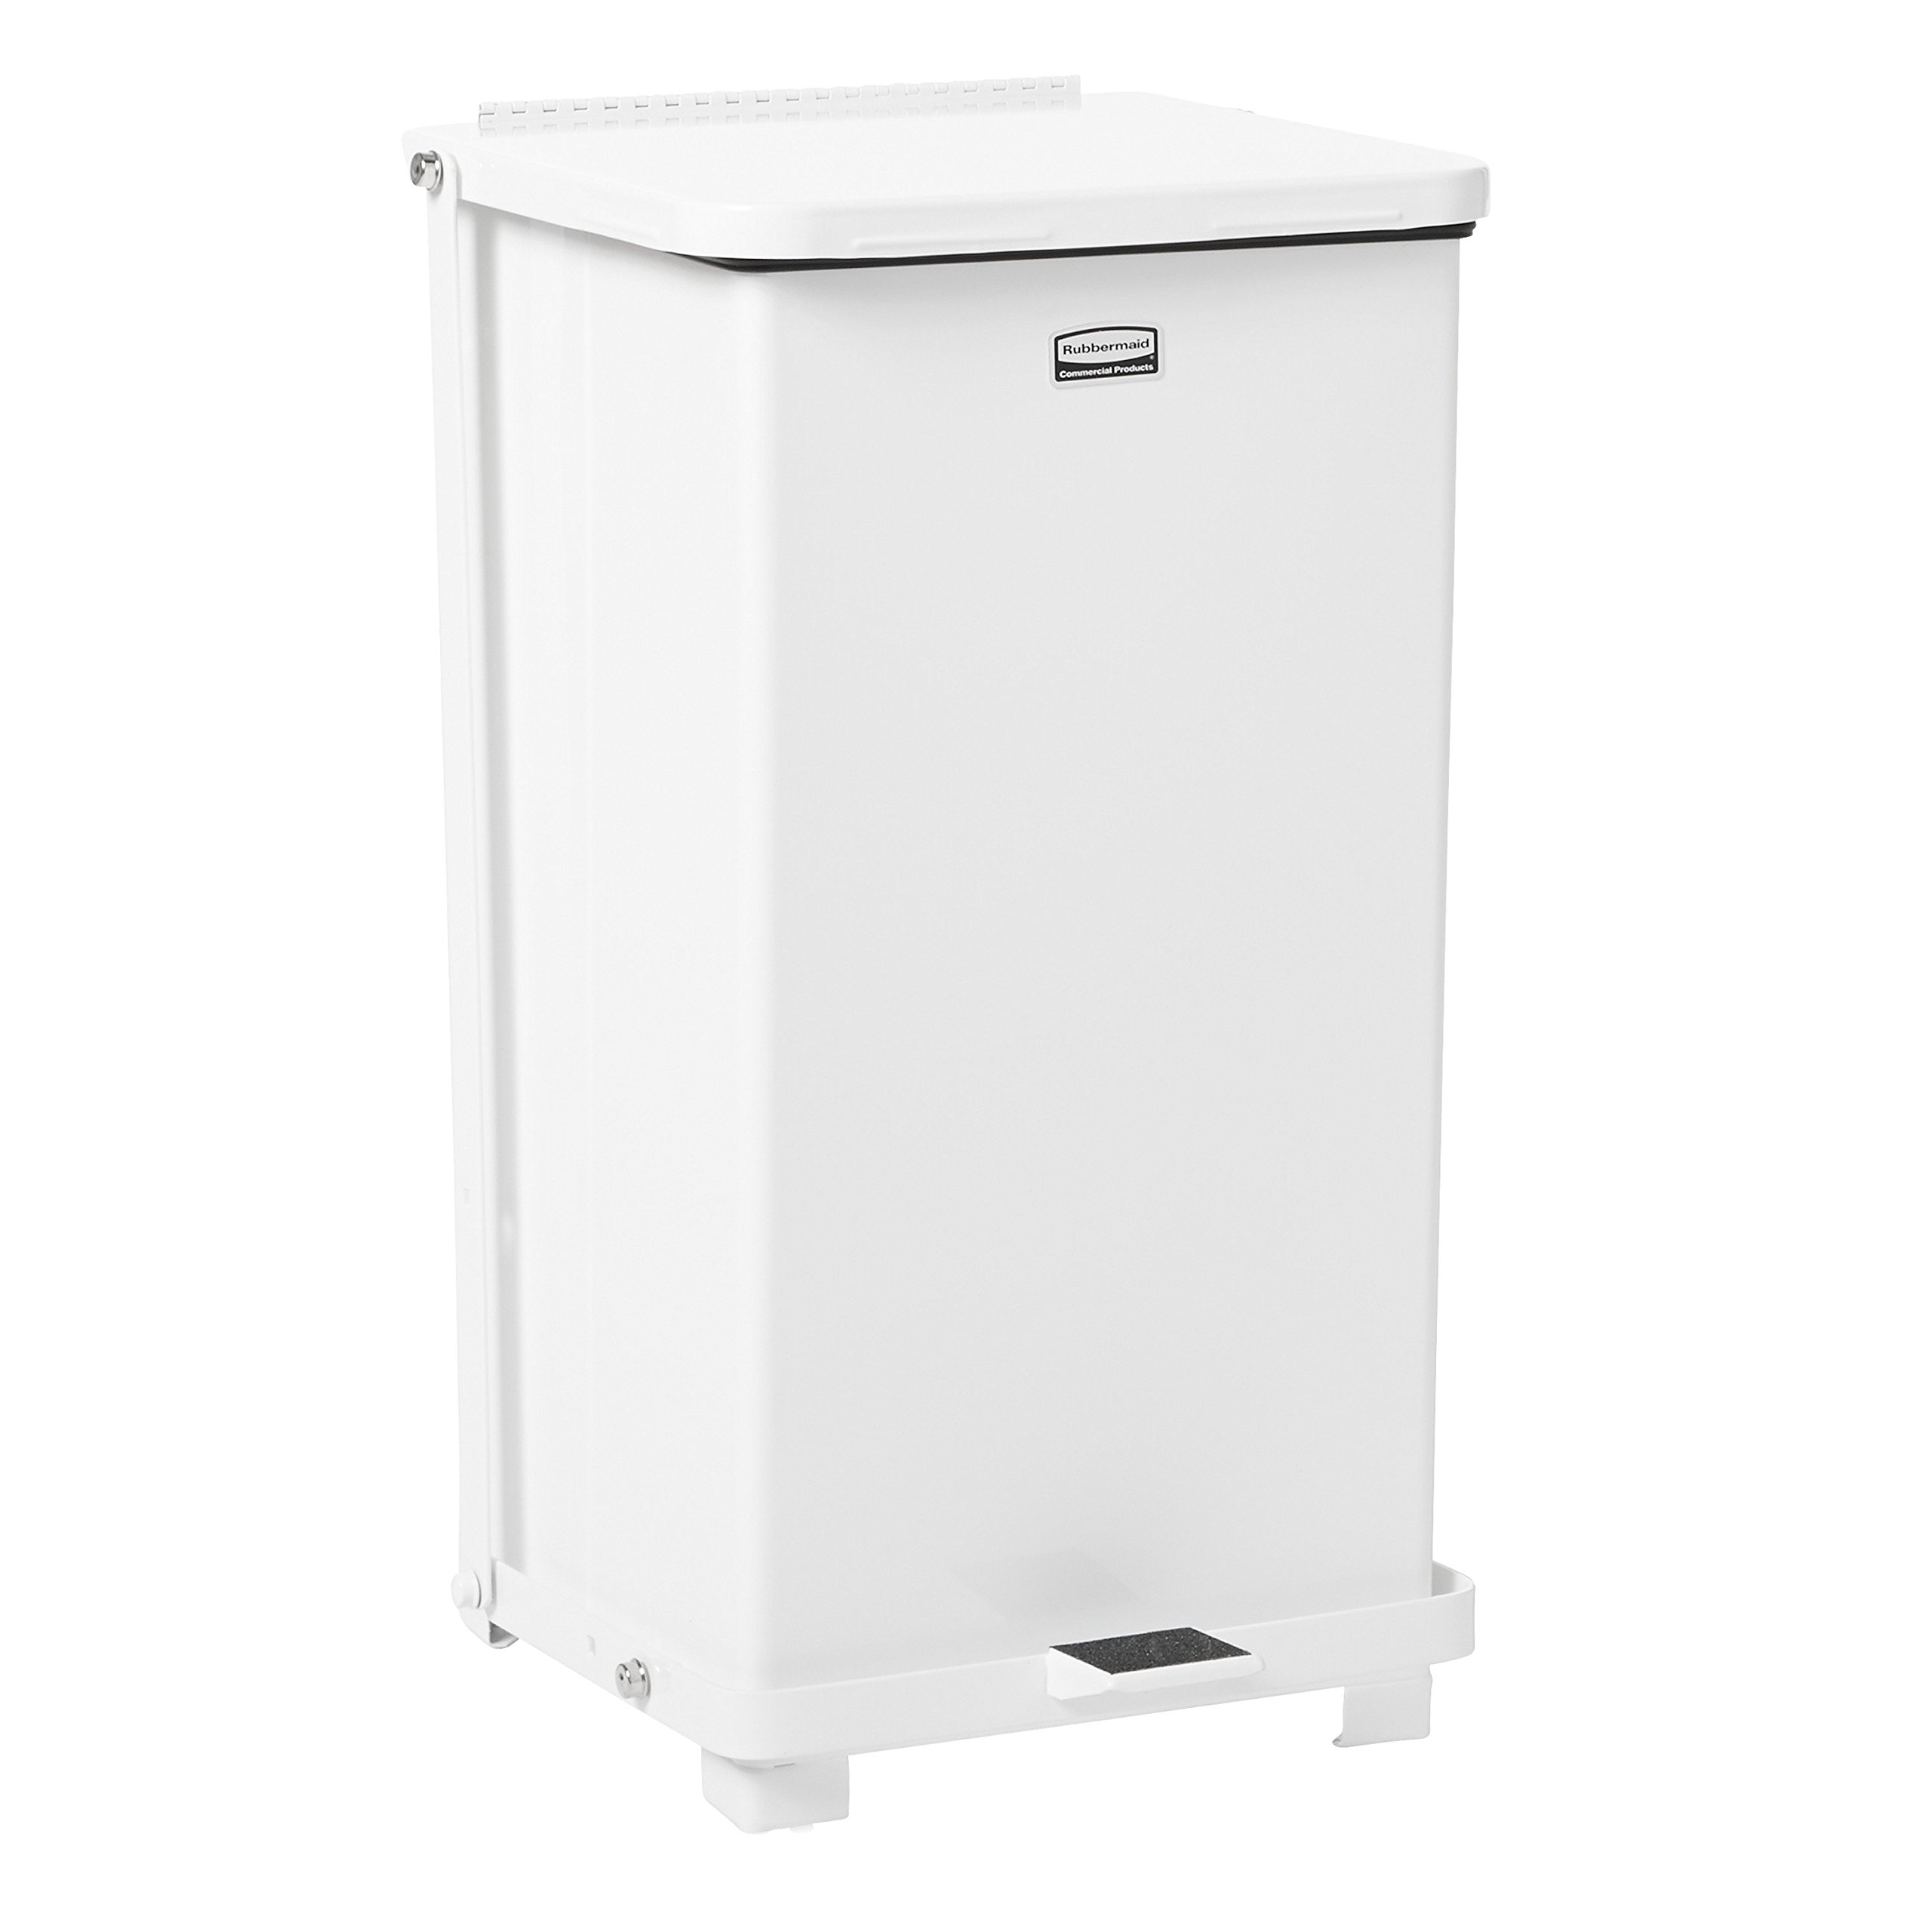 Rubbermaid Commercial Defenders Step-On Trash Can with Plastic Liner, 12 Gallon, White, FGST12EPLWH by Rubbermaid Commercial Products